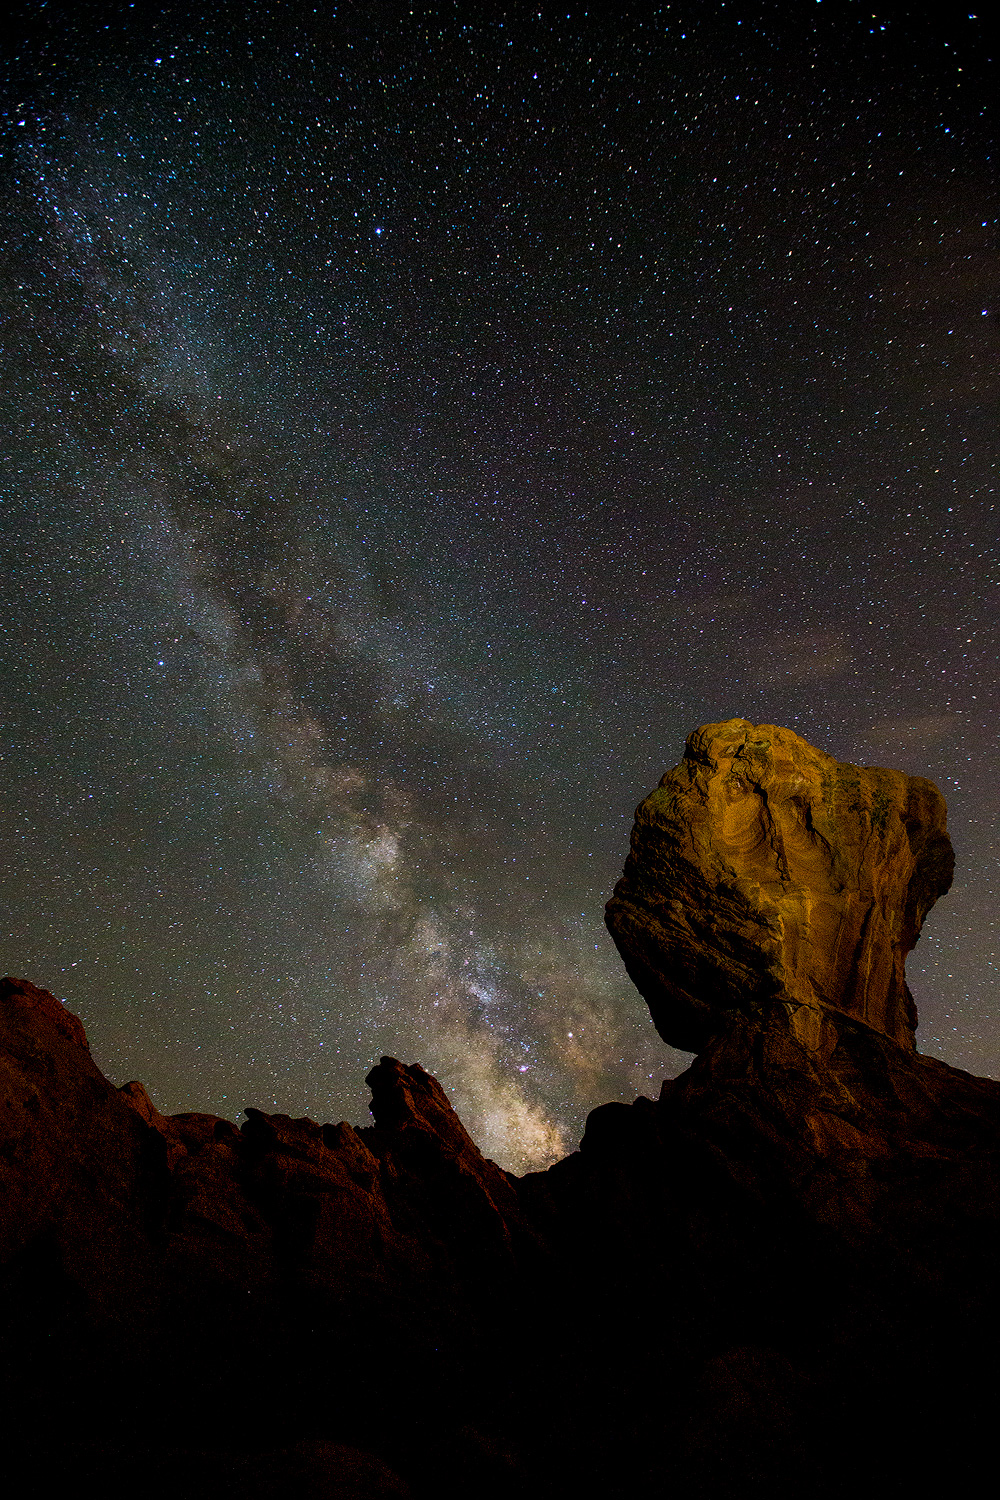 The Milky Way rises above one of the many unusual rock formations in the park.